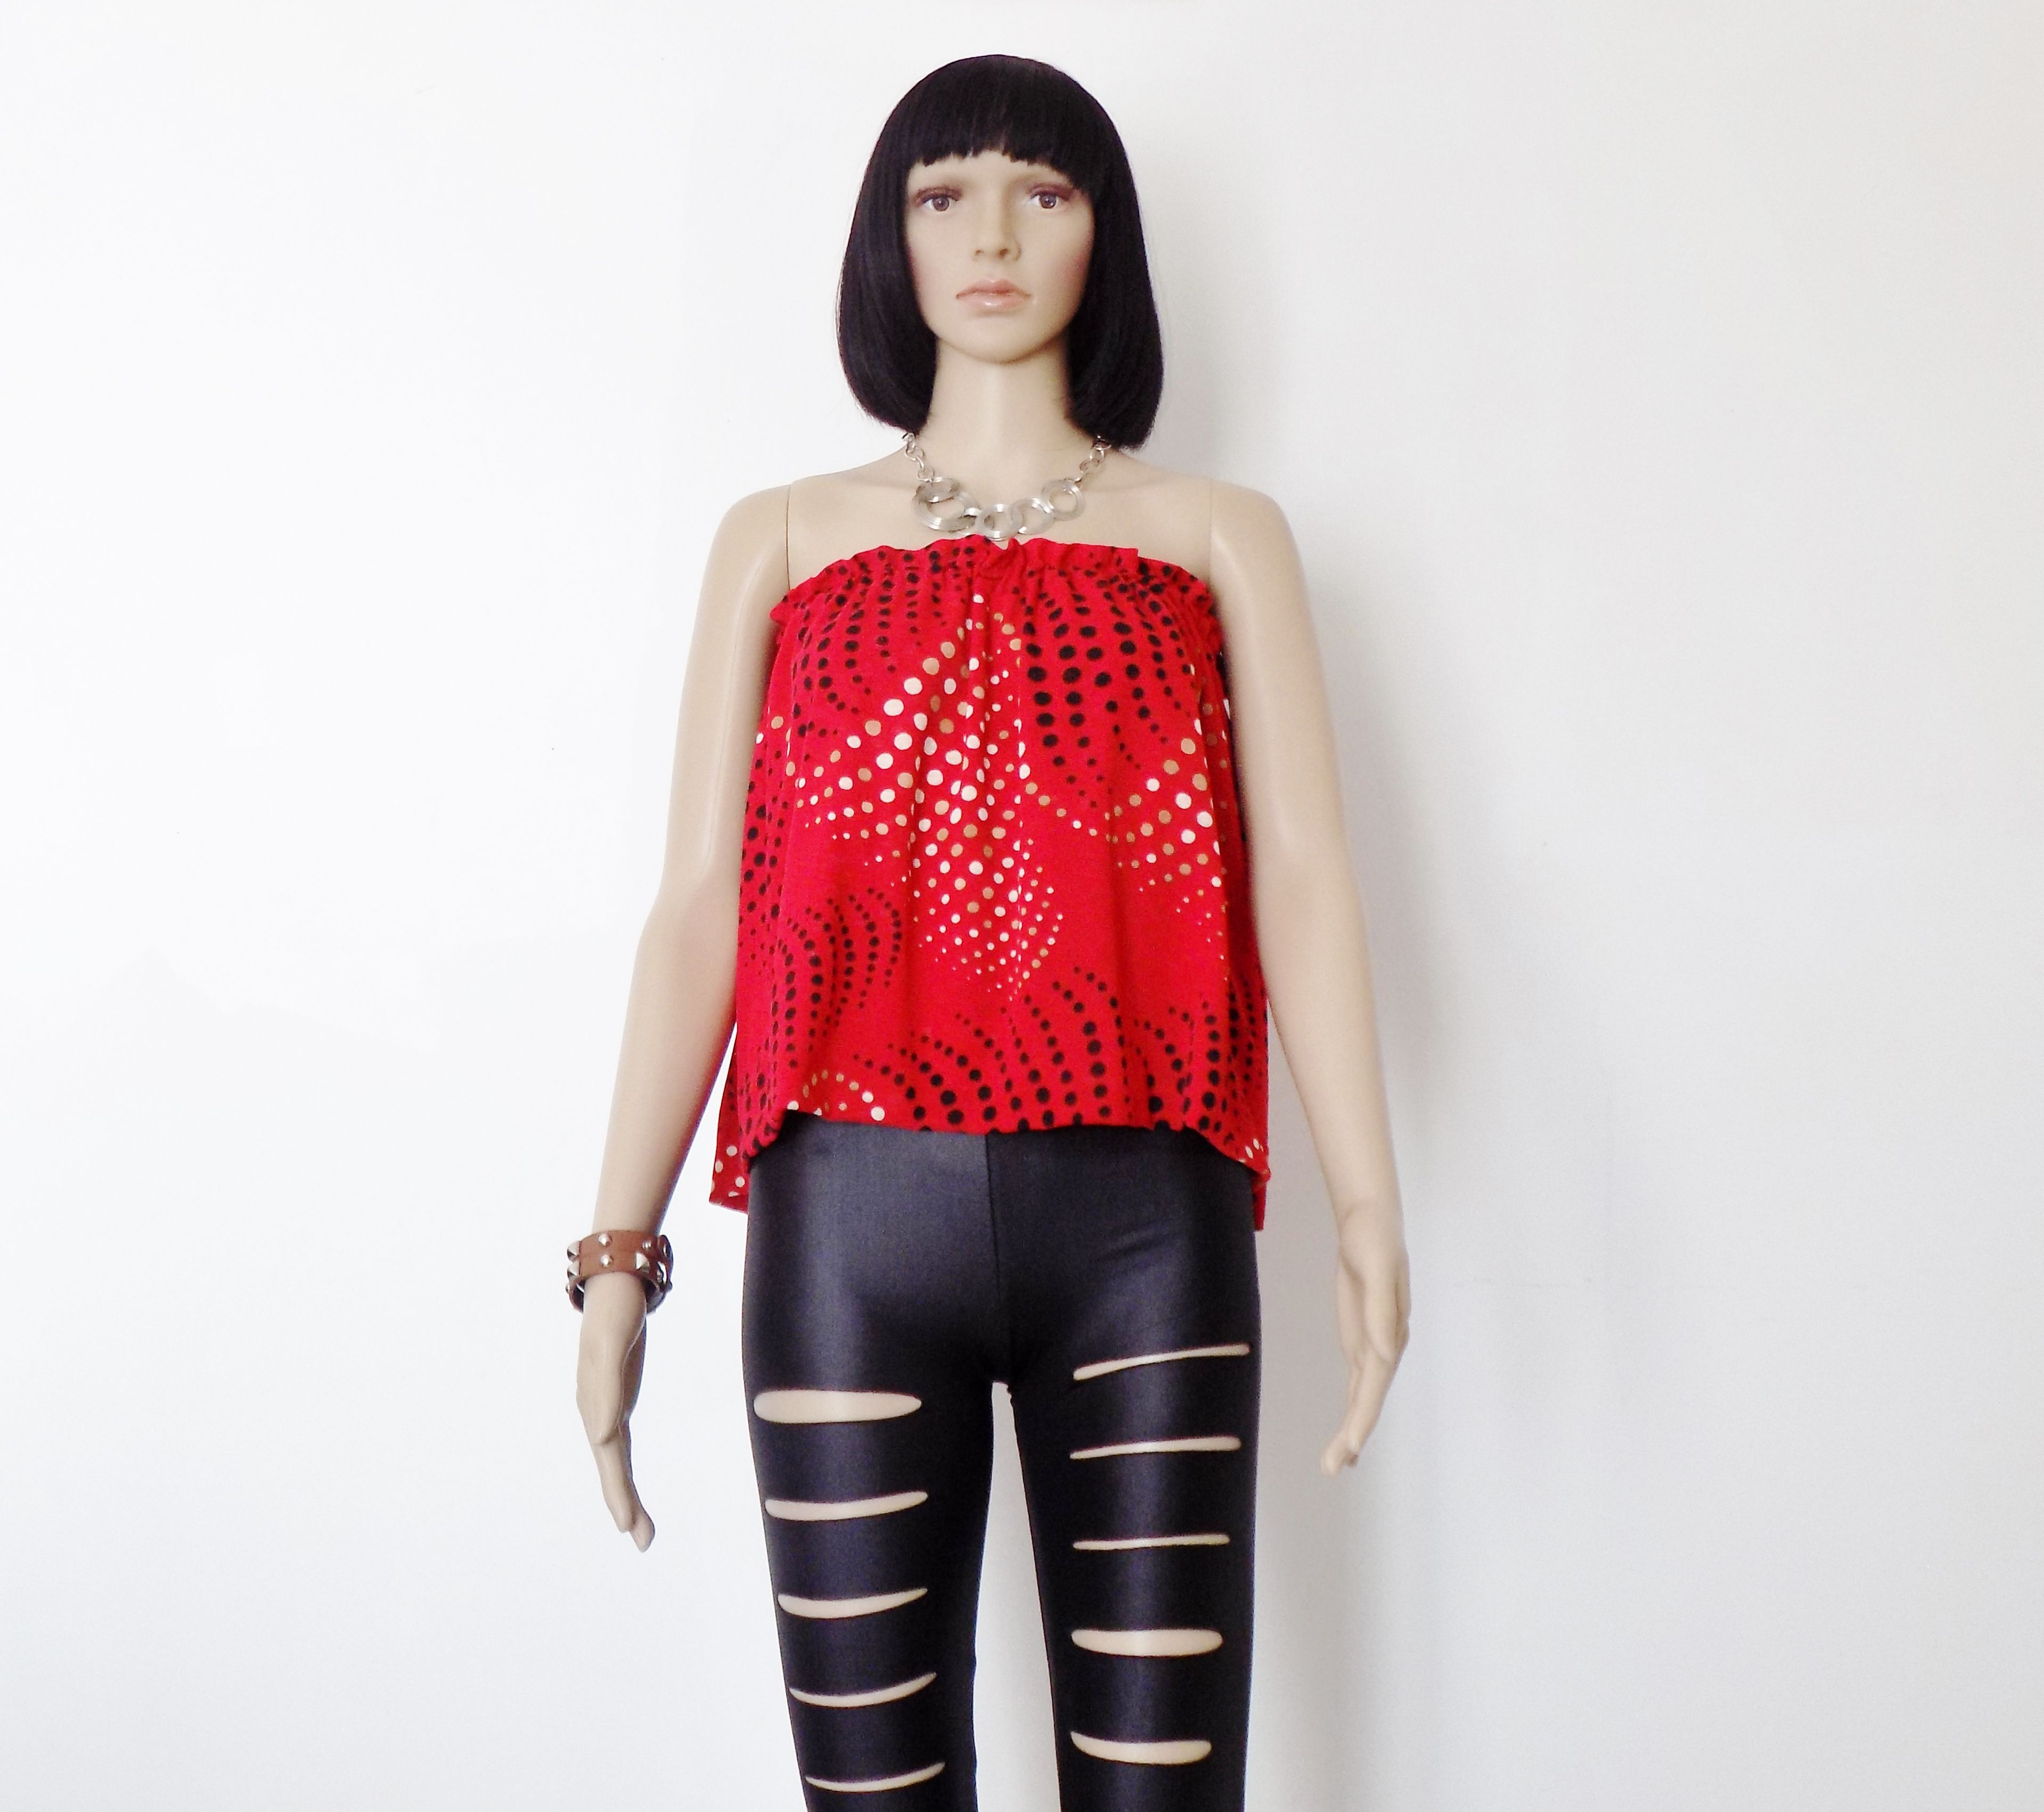 Originale Top, Jupe !! RED WAVE !! EN Jersey rouge Taille 38/40 BELICIOUS-DELICIOUS CREATION